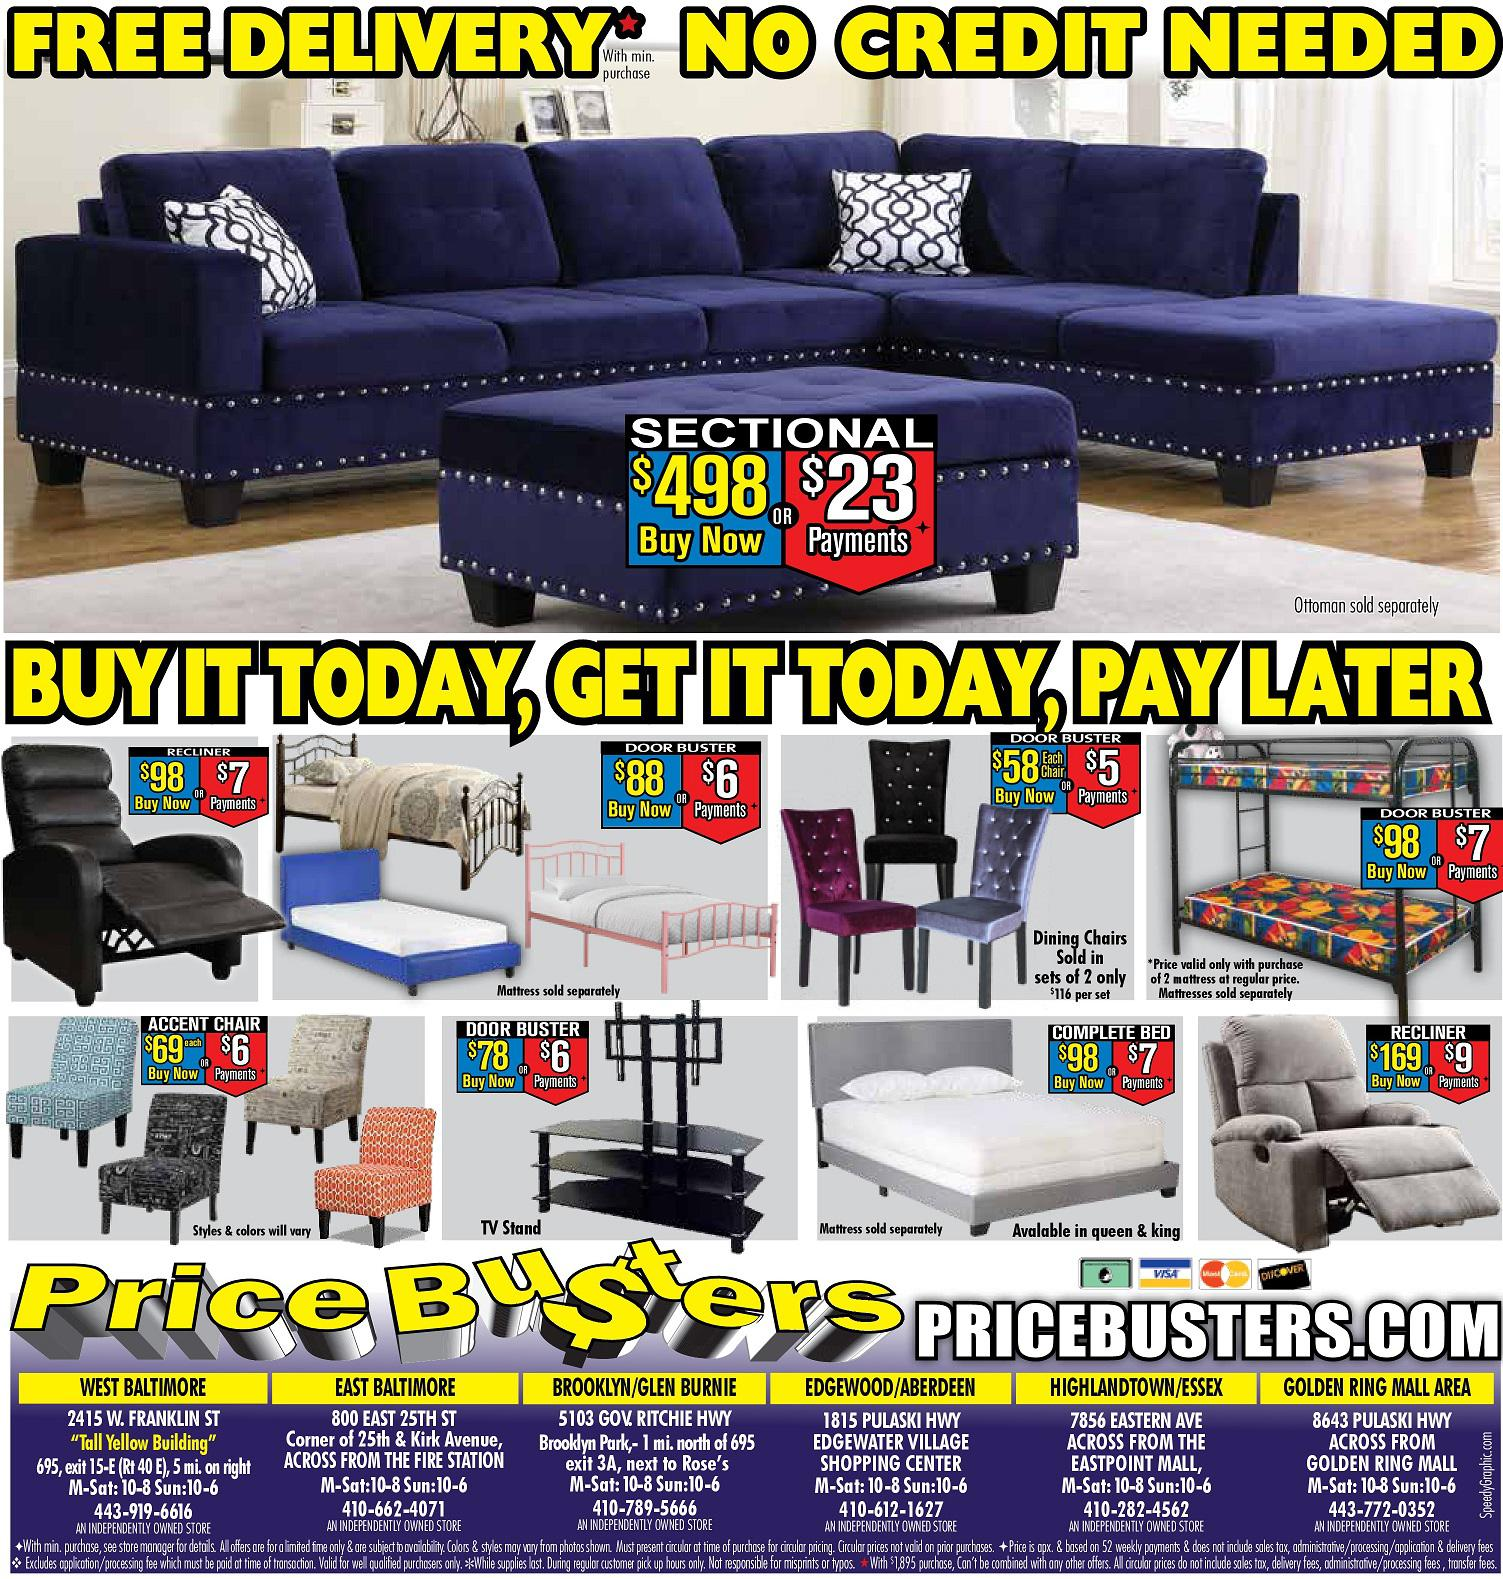 Price Busters Discount Furniture Furniture Store Baltimore Md 21223